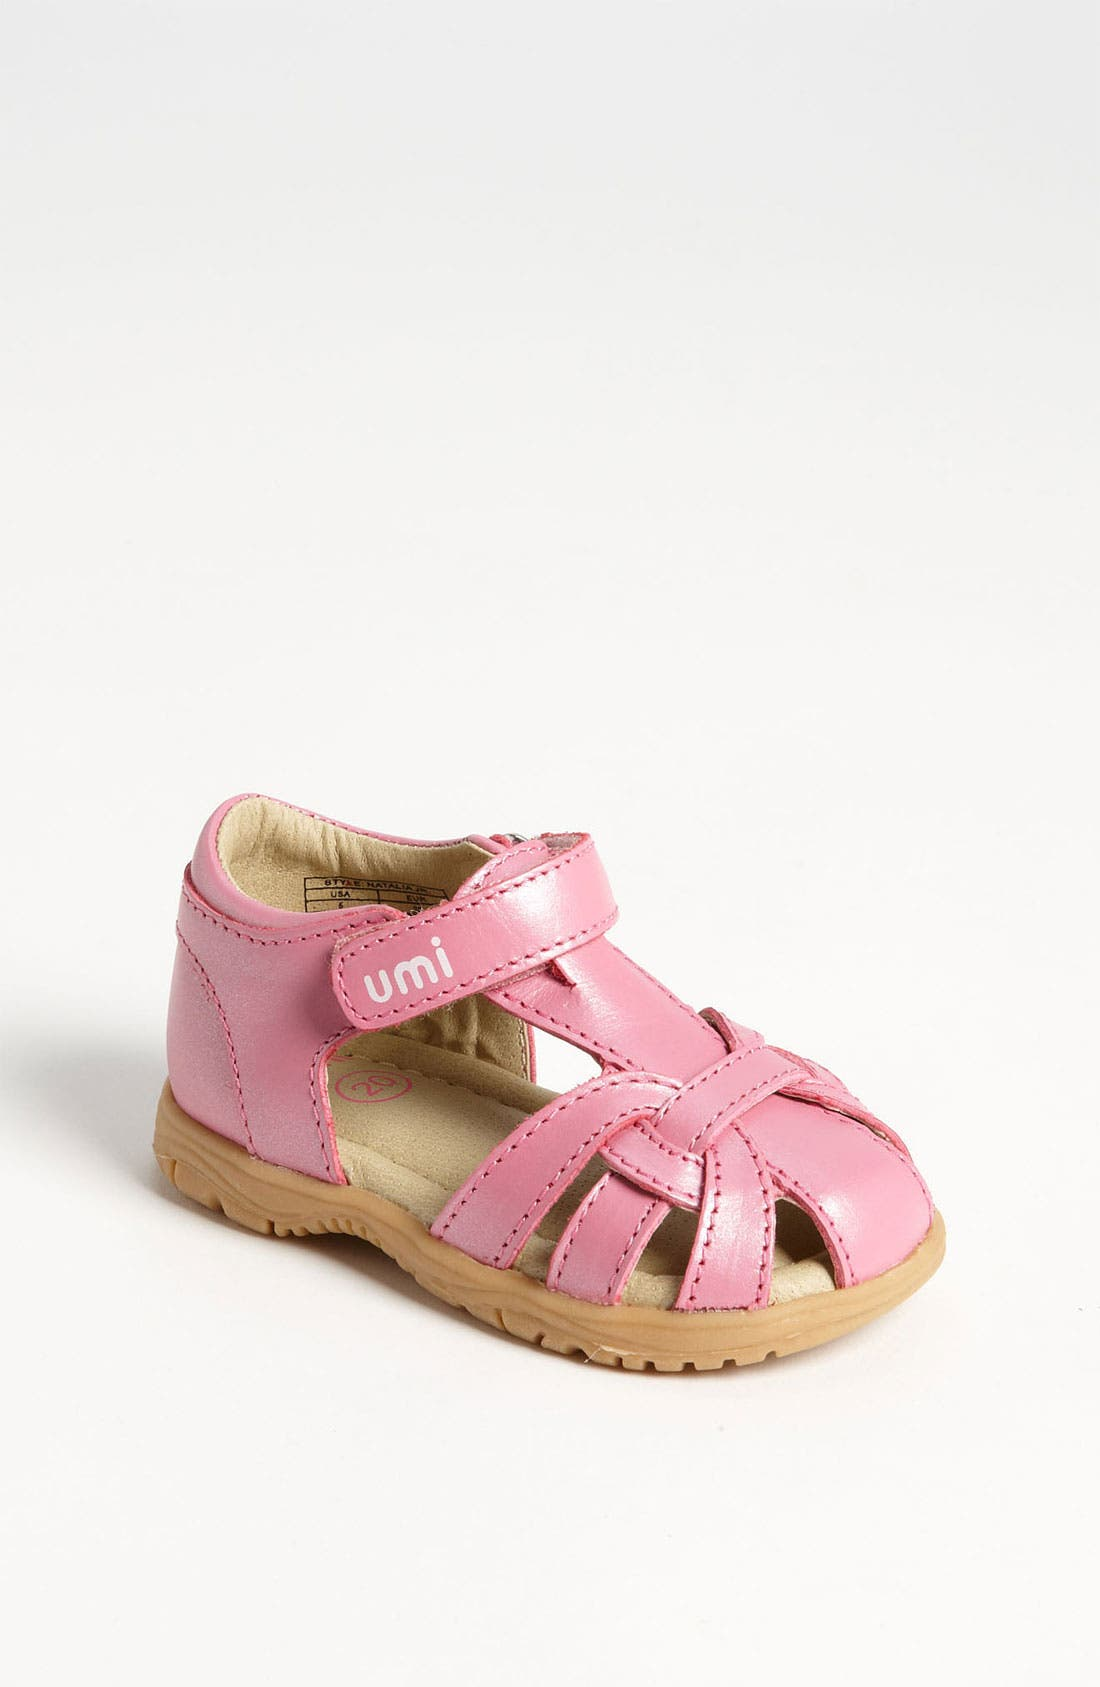 Alternate Image 1 Selected - Umi 'Natalia' Sandal (Baby, Walker & Toddler)